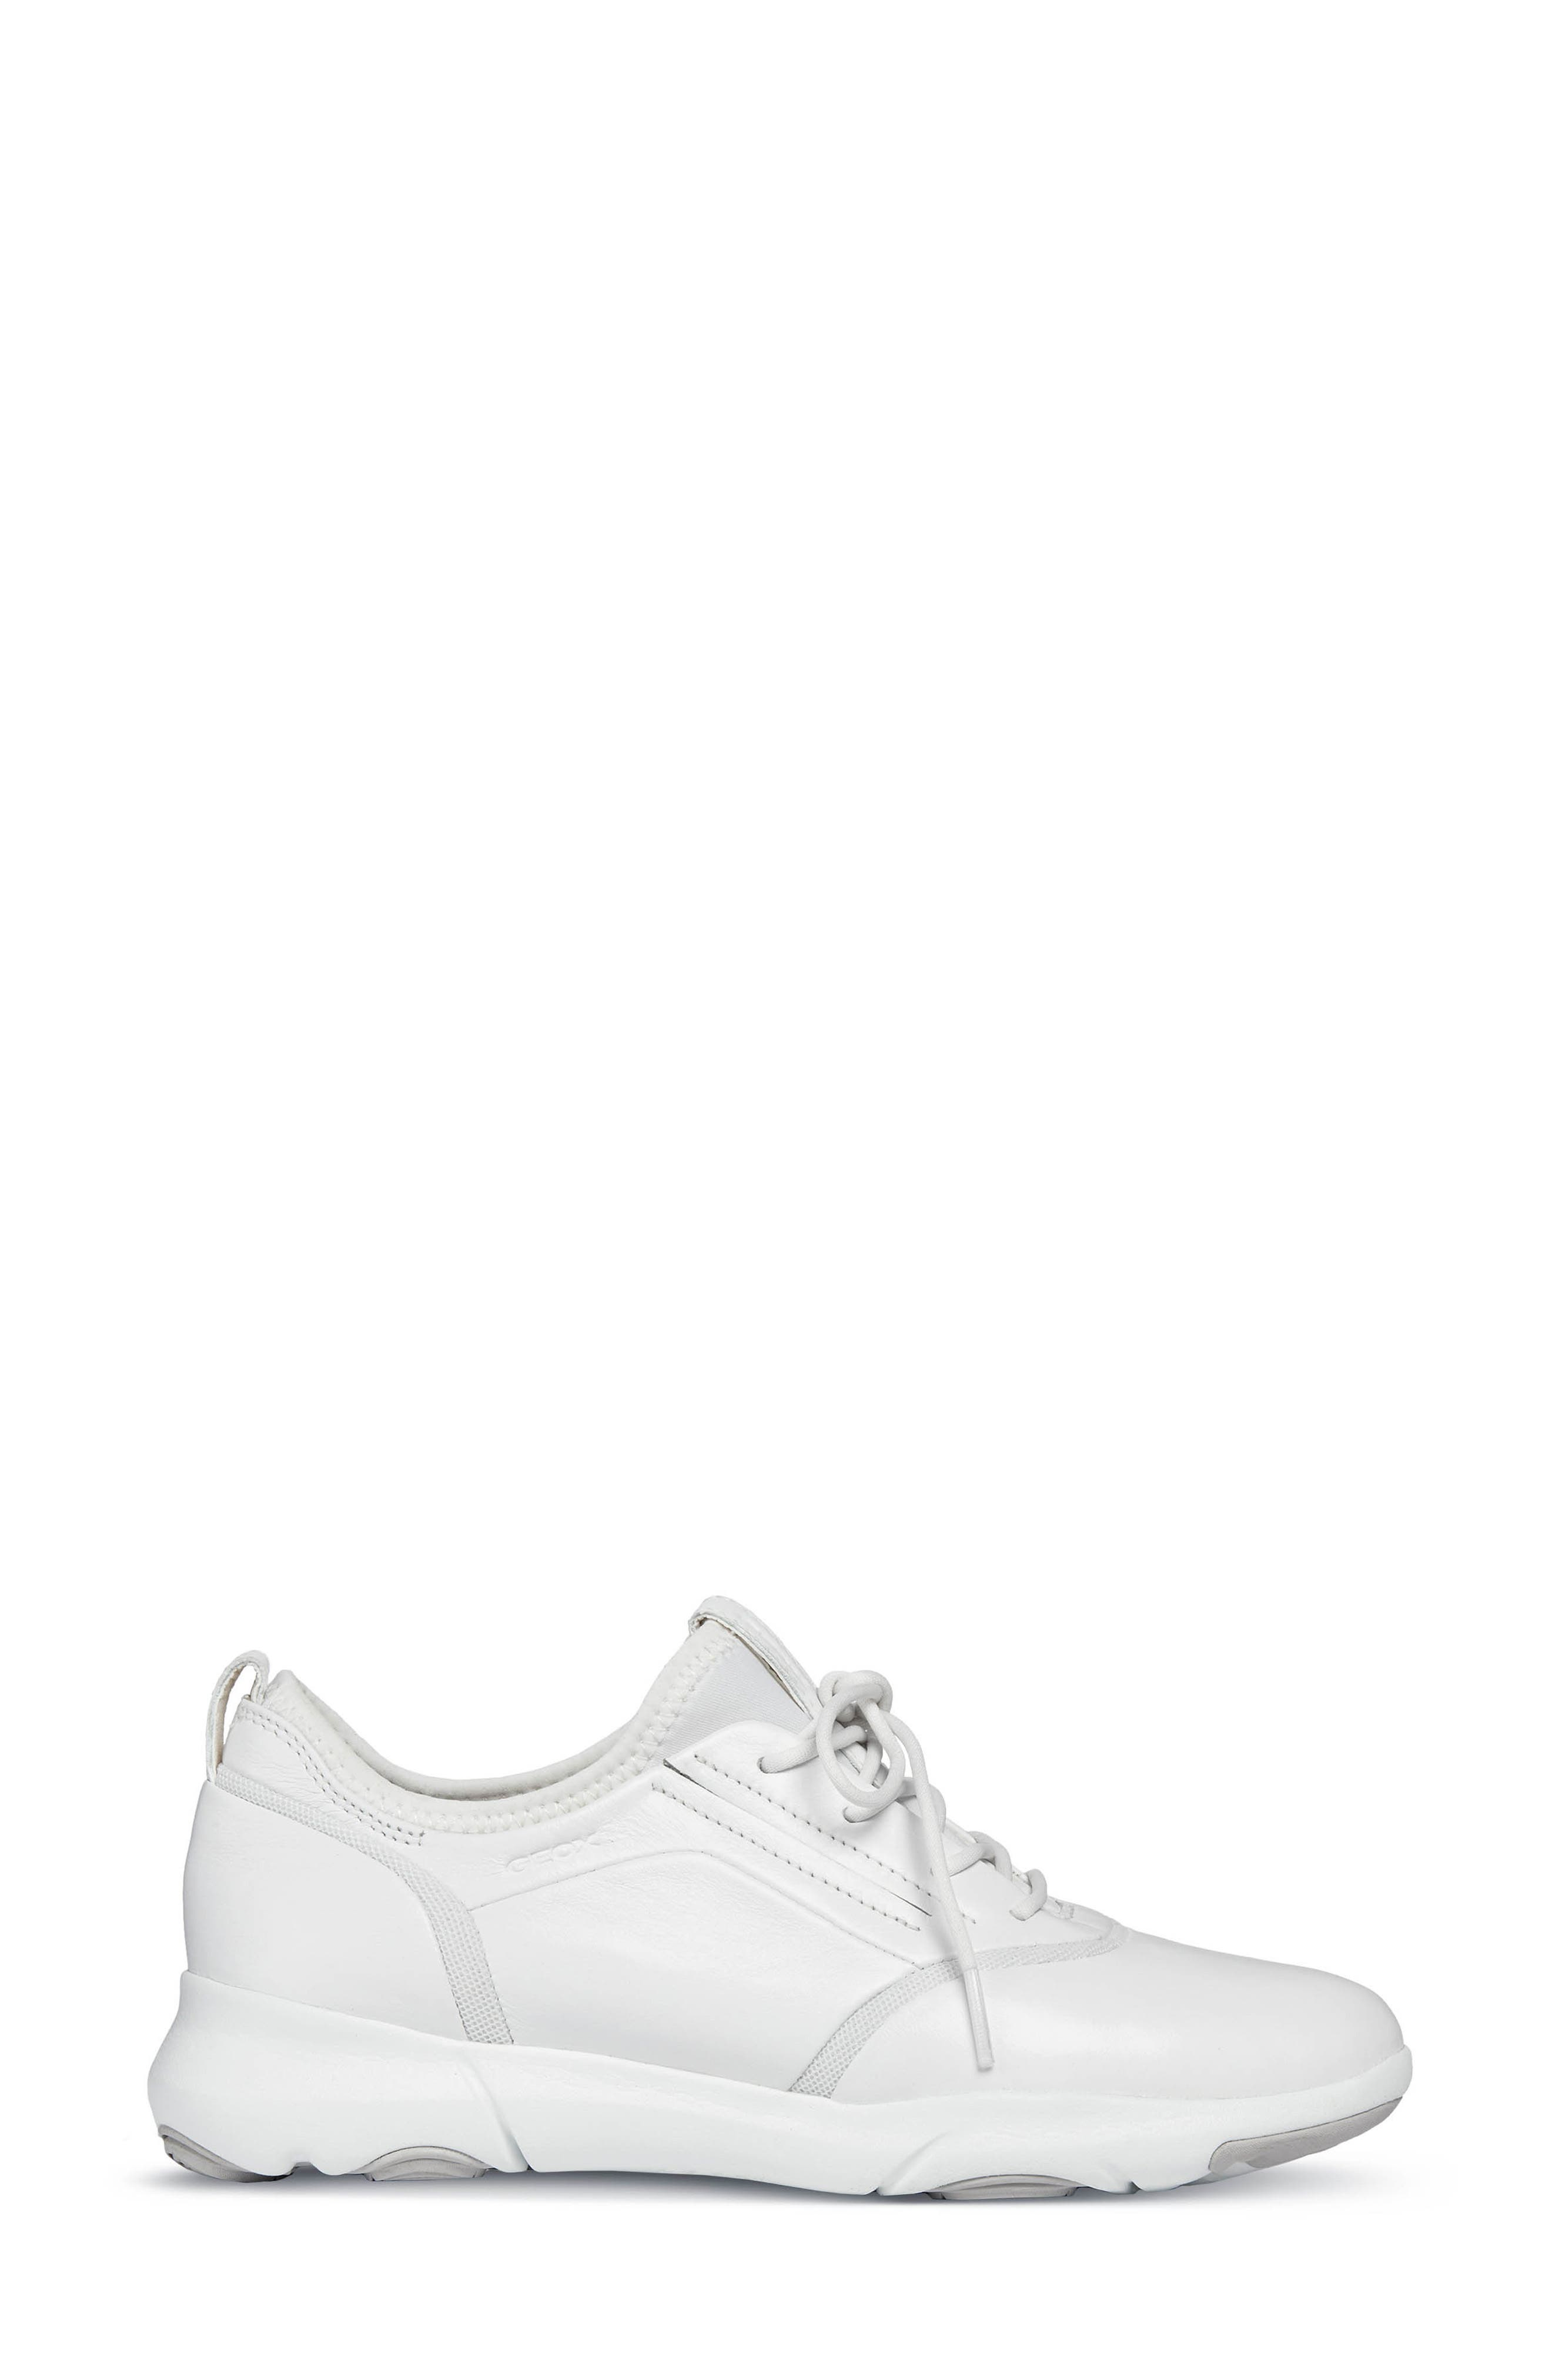 Nebula S 2 Low Top Sneaker,                             Alternate thumbnail 3, color,                             WHITE LEATHER